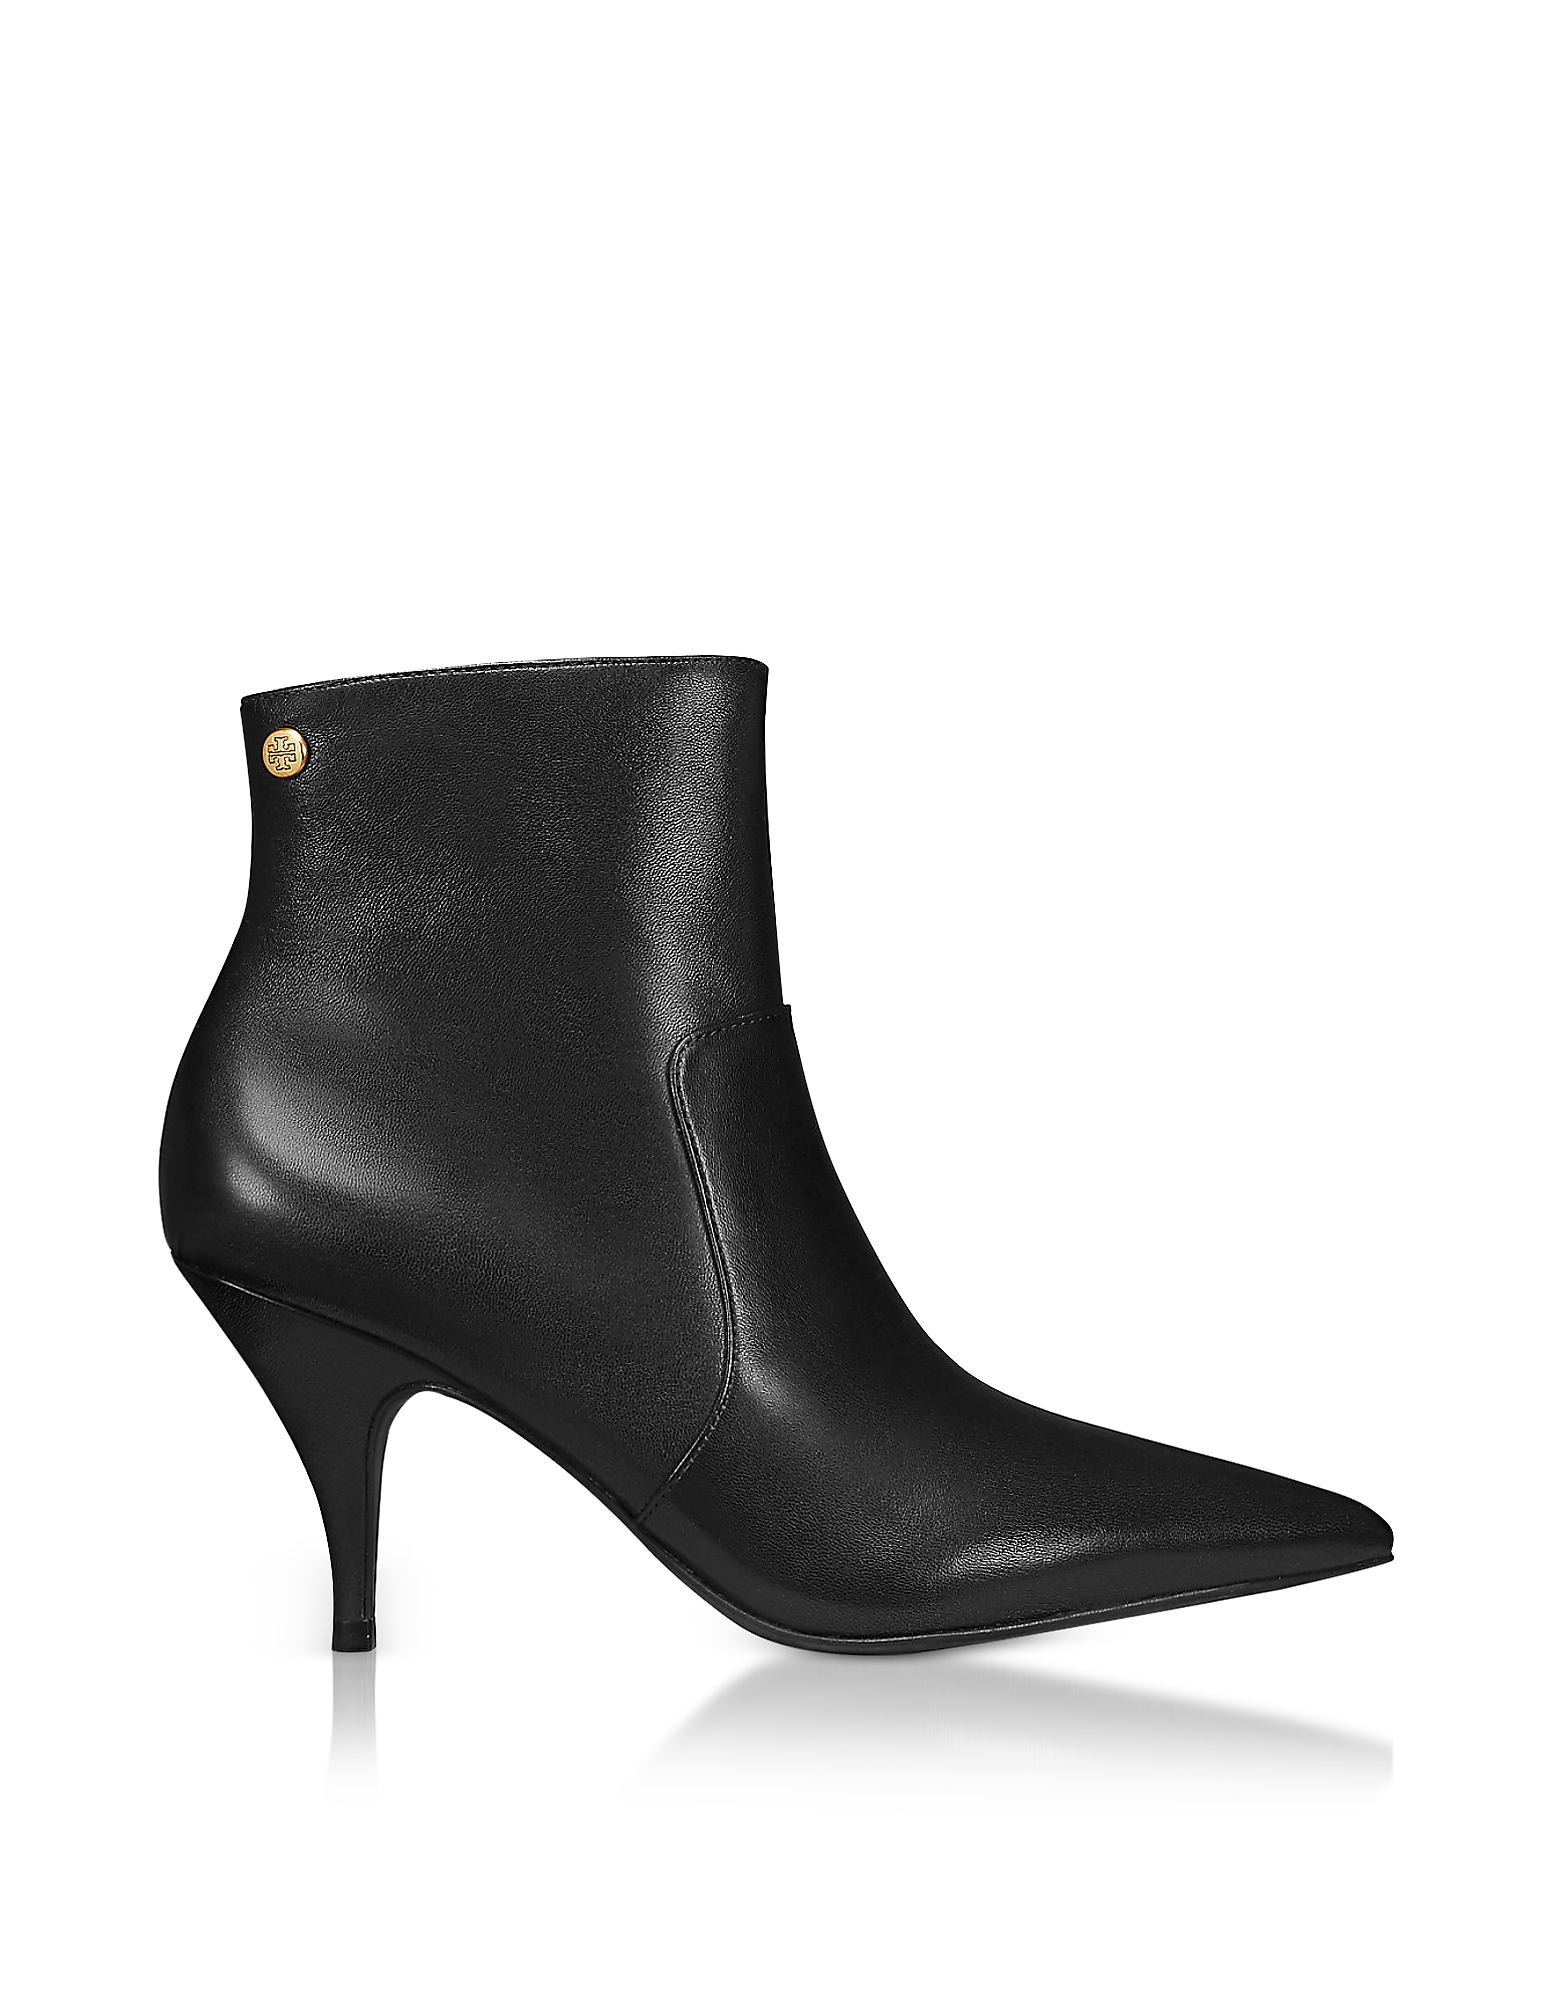 Tory Burch Shoes, Black Georgina Tall Booties